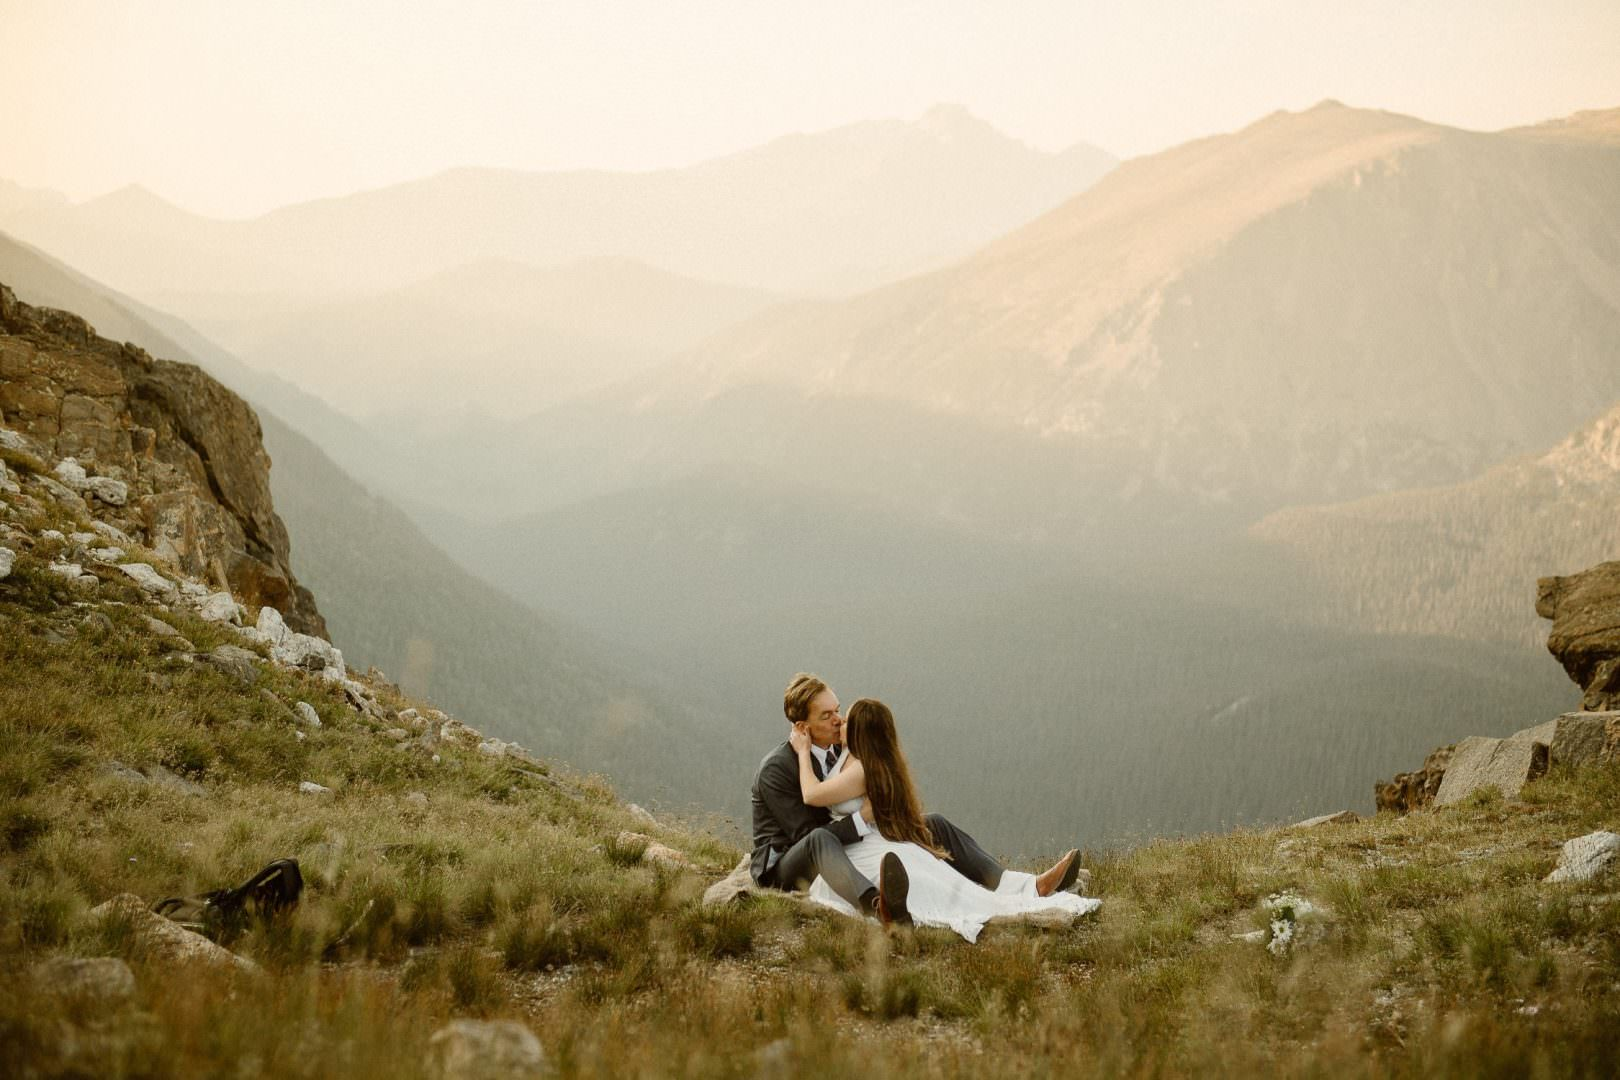 Colorado Sunrise. Colorado Intimate Weddings and Adventure Elopement Photographer | Rocky Mountain National Park Wedding Photographer | Adventure